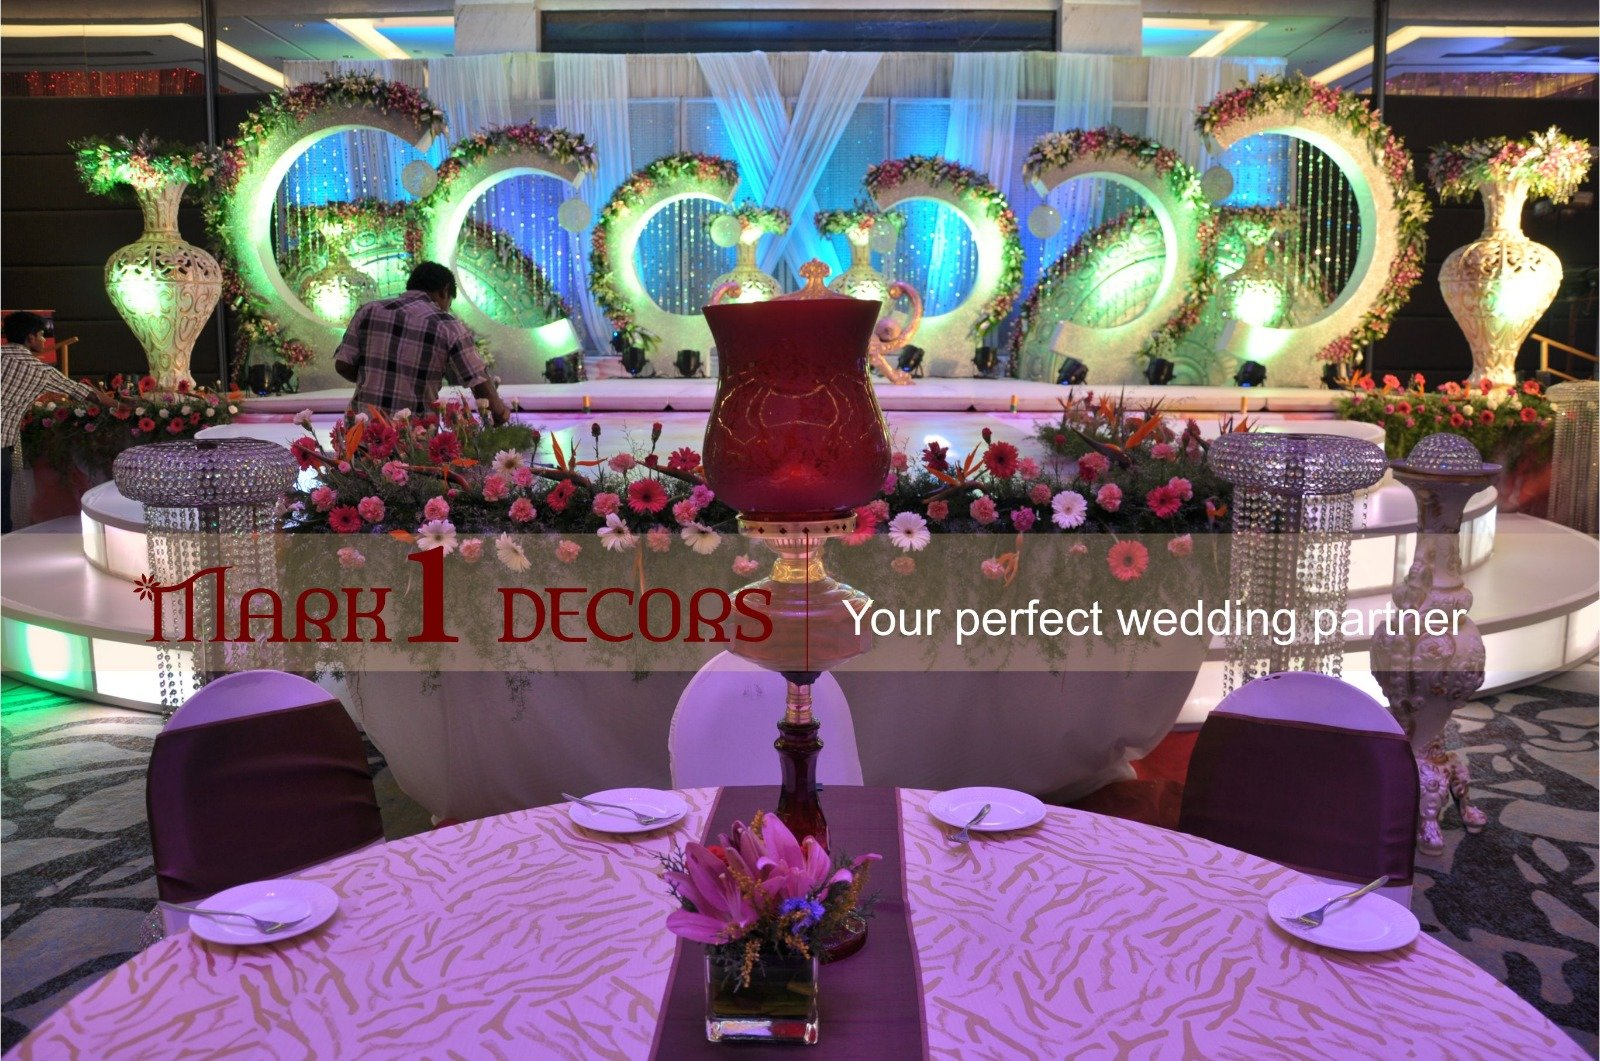 Mark 1 decors chennai portfolio mark 1 decors photos weddingz 5 junglespirit Choice Image